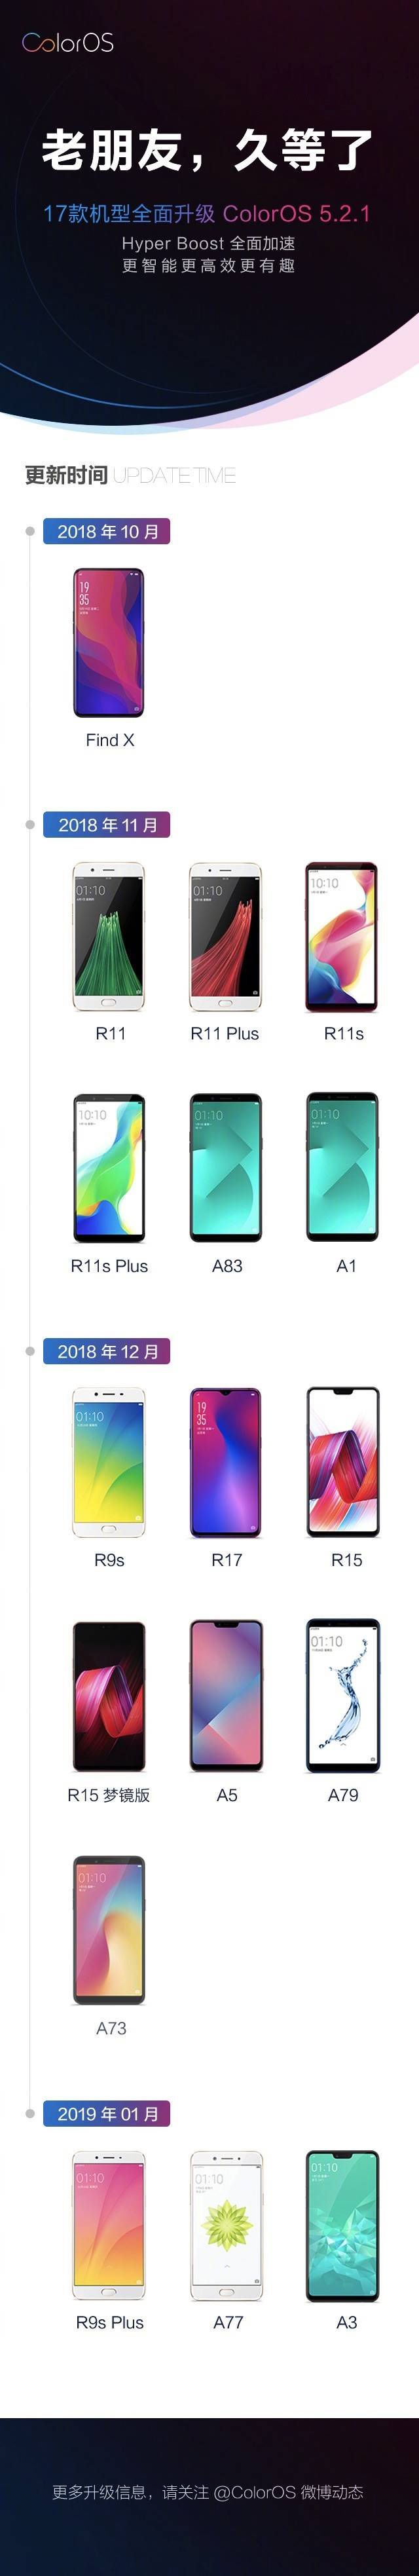 ColorOS 5 2 1with Hyper Boost ready for most OPPO phones - Android